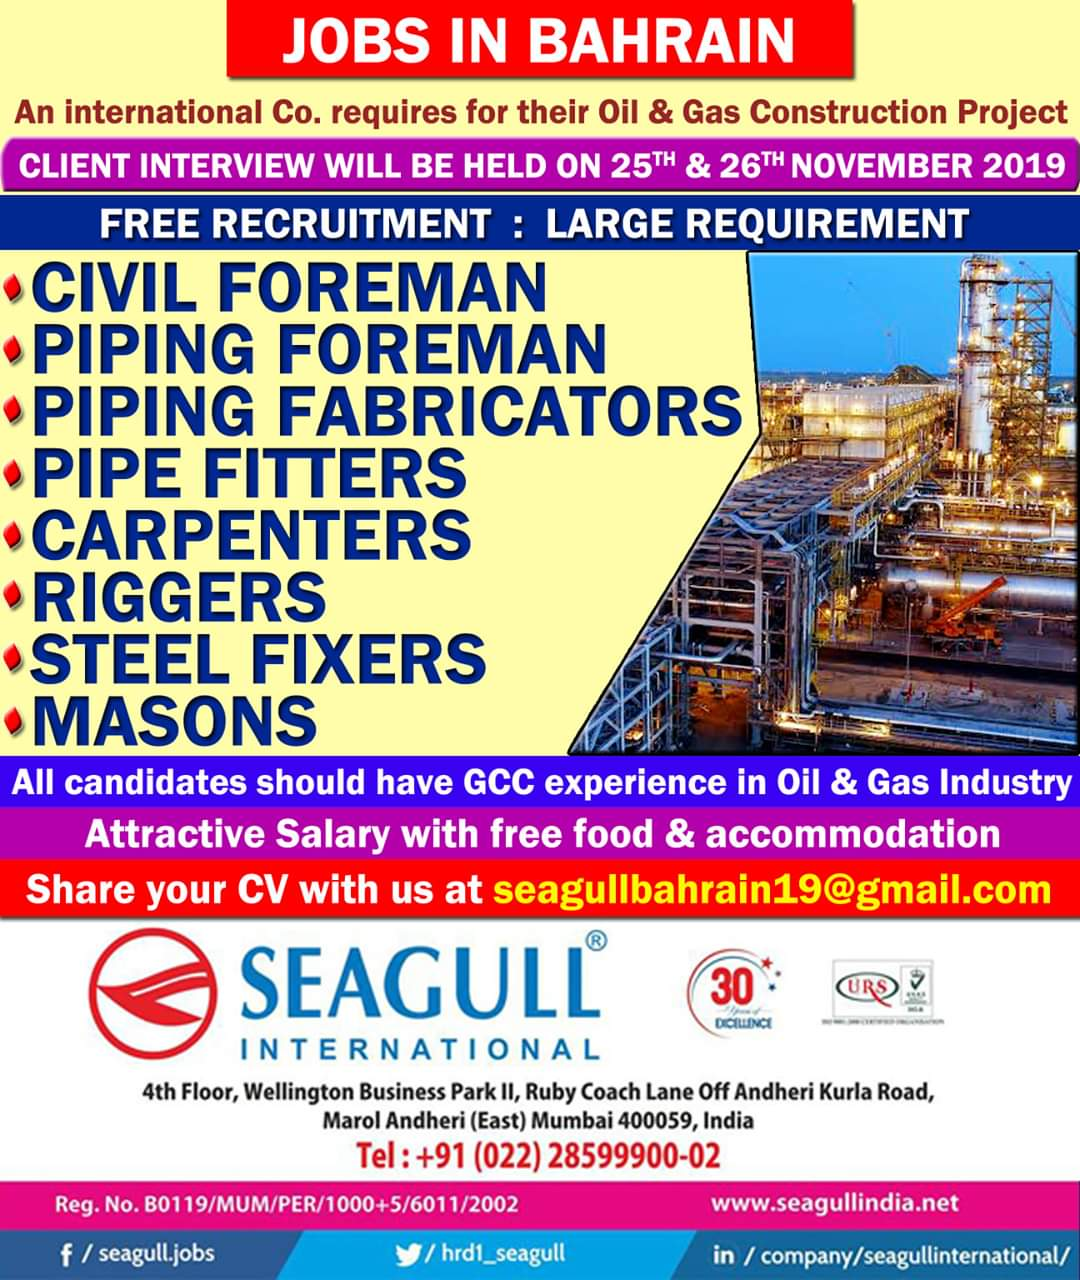 JOB VACANCIES IN OIL AND GAS CONSTRUCTION PROJECT IN BAHRAIN